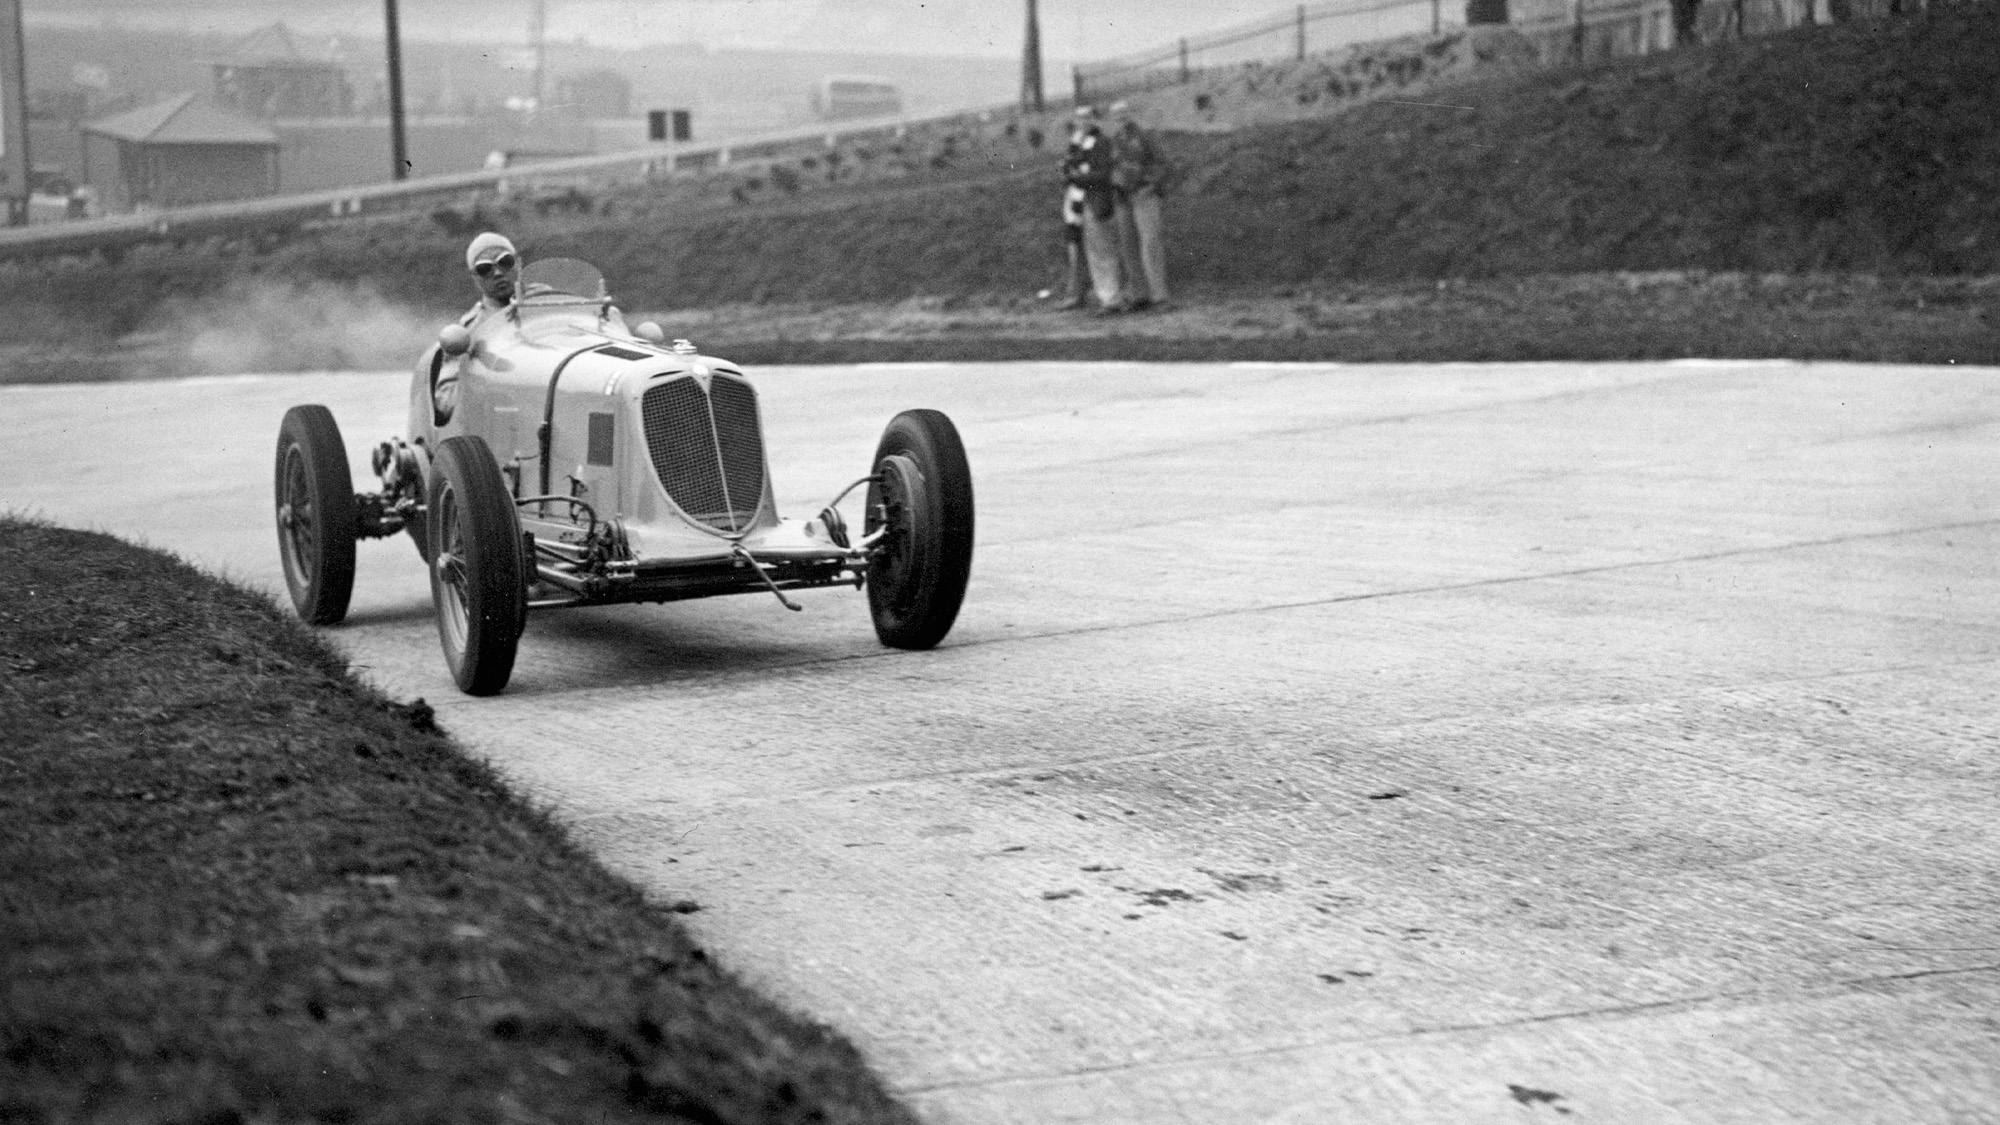 Prince Bira at Brooklands in 1938